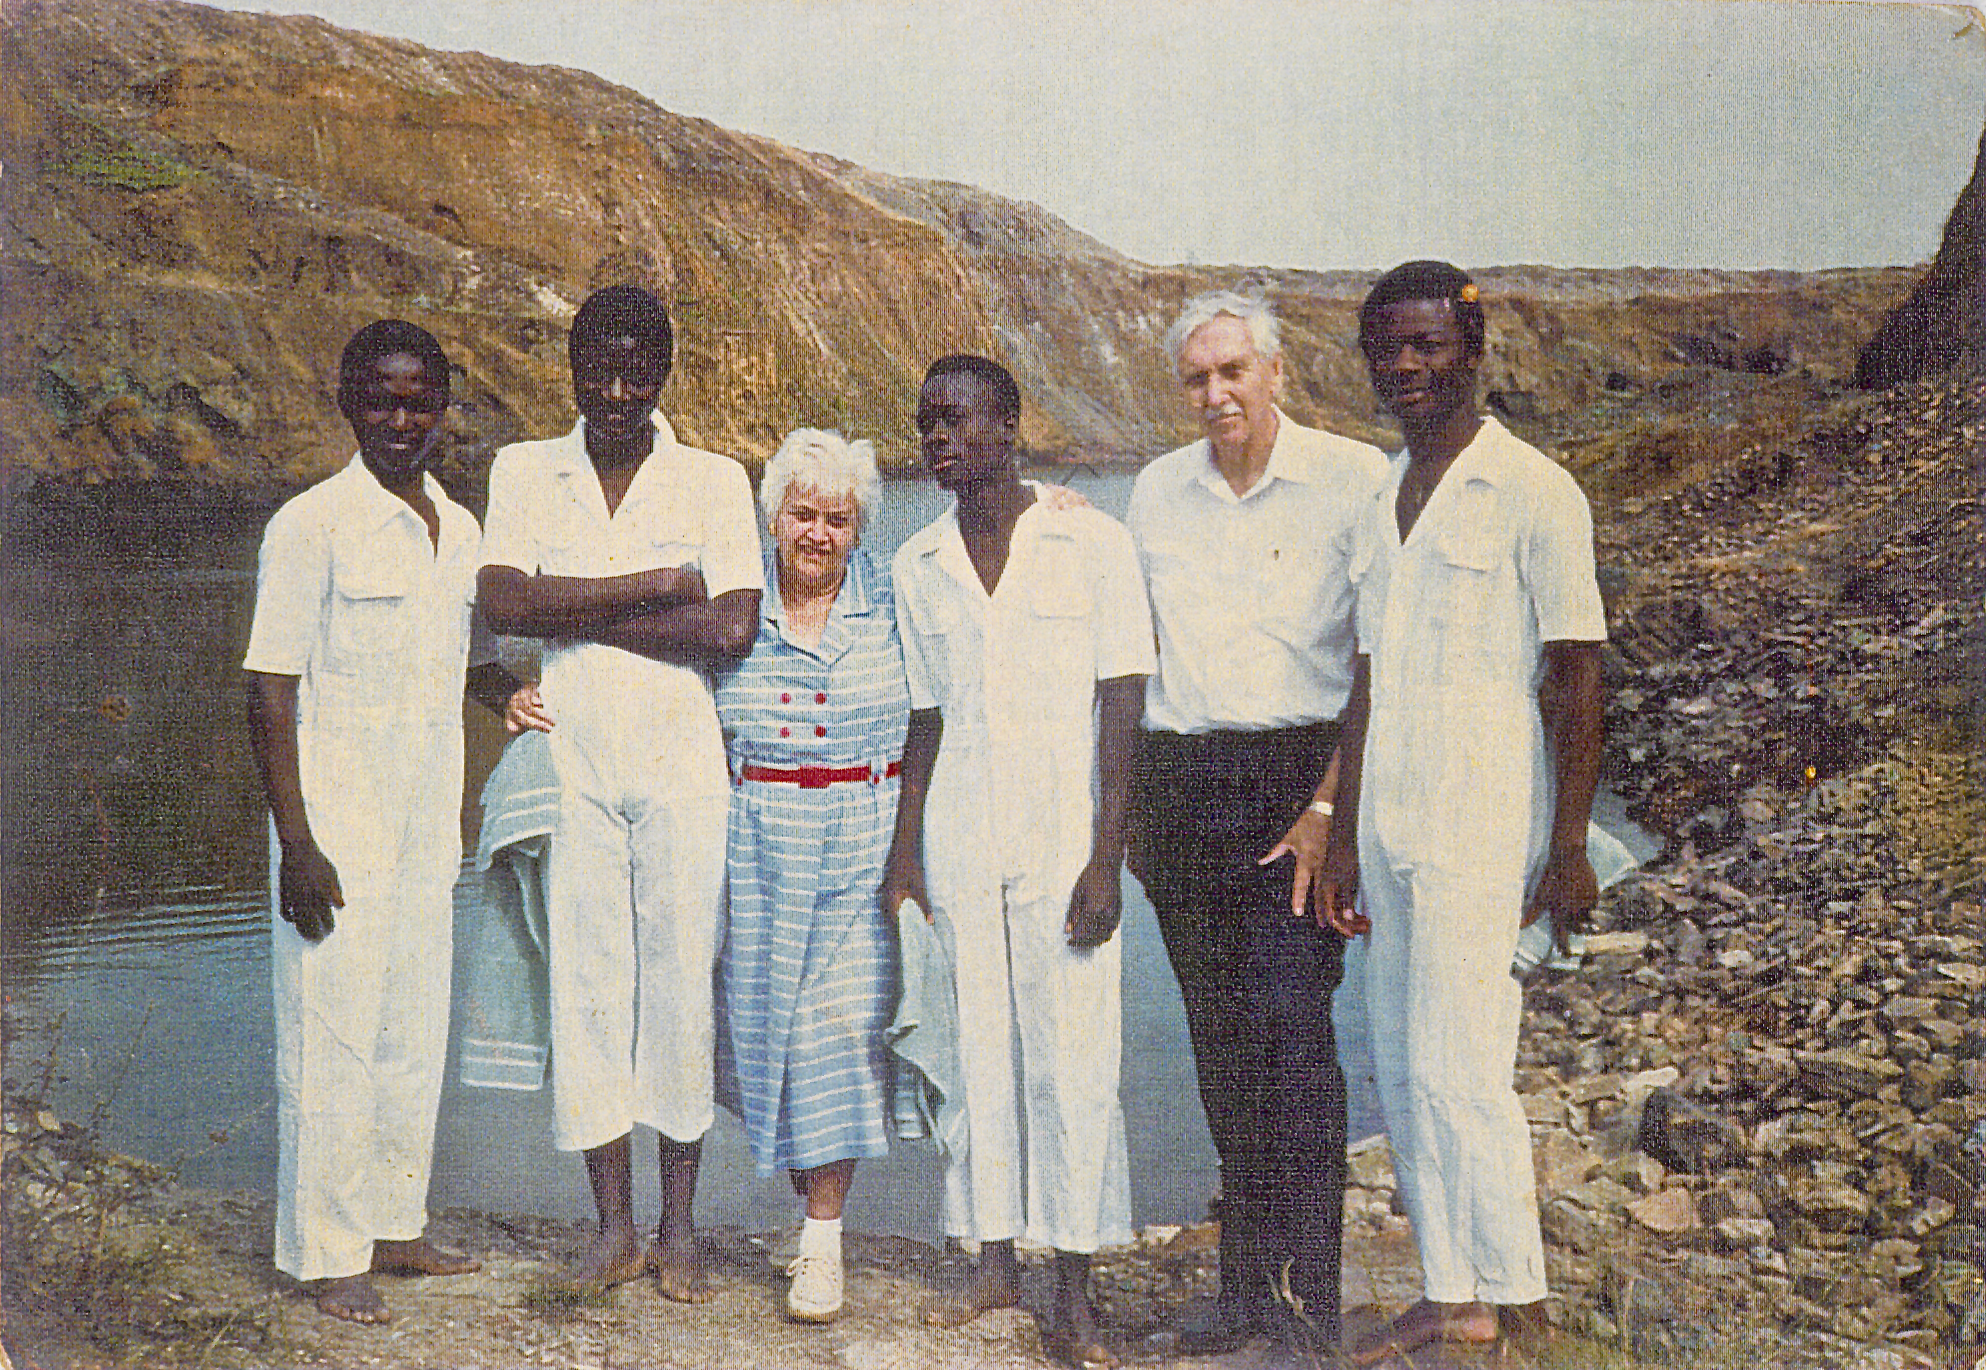 Church member Gilbert Mingtoyi, left, assists with the baptism of three men at the edge of an abandoned copper mine near Lubumbashi, Zaire, in 1987. Elder Arie Noot and Sister Ante Noot are the senior missionaries in the photo. Mingtoyi had been baptized in May 1987 at the same location as a part of baptismal service involving 80 converts.